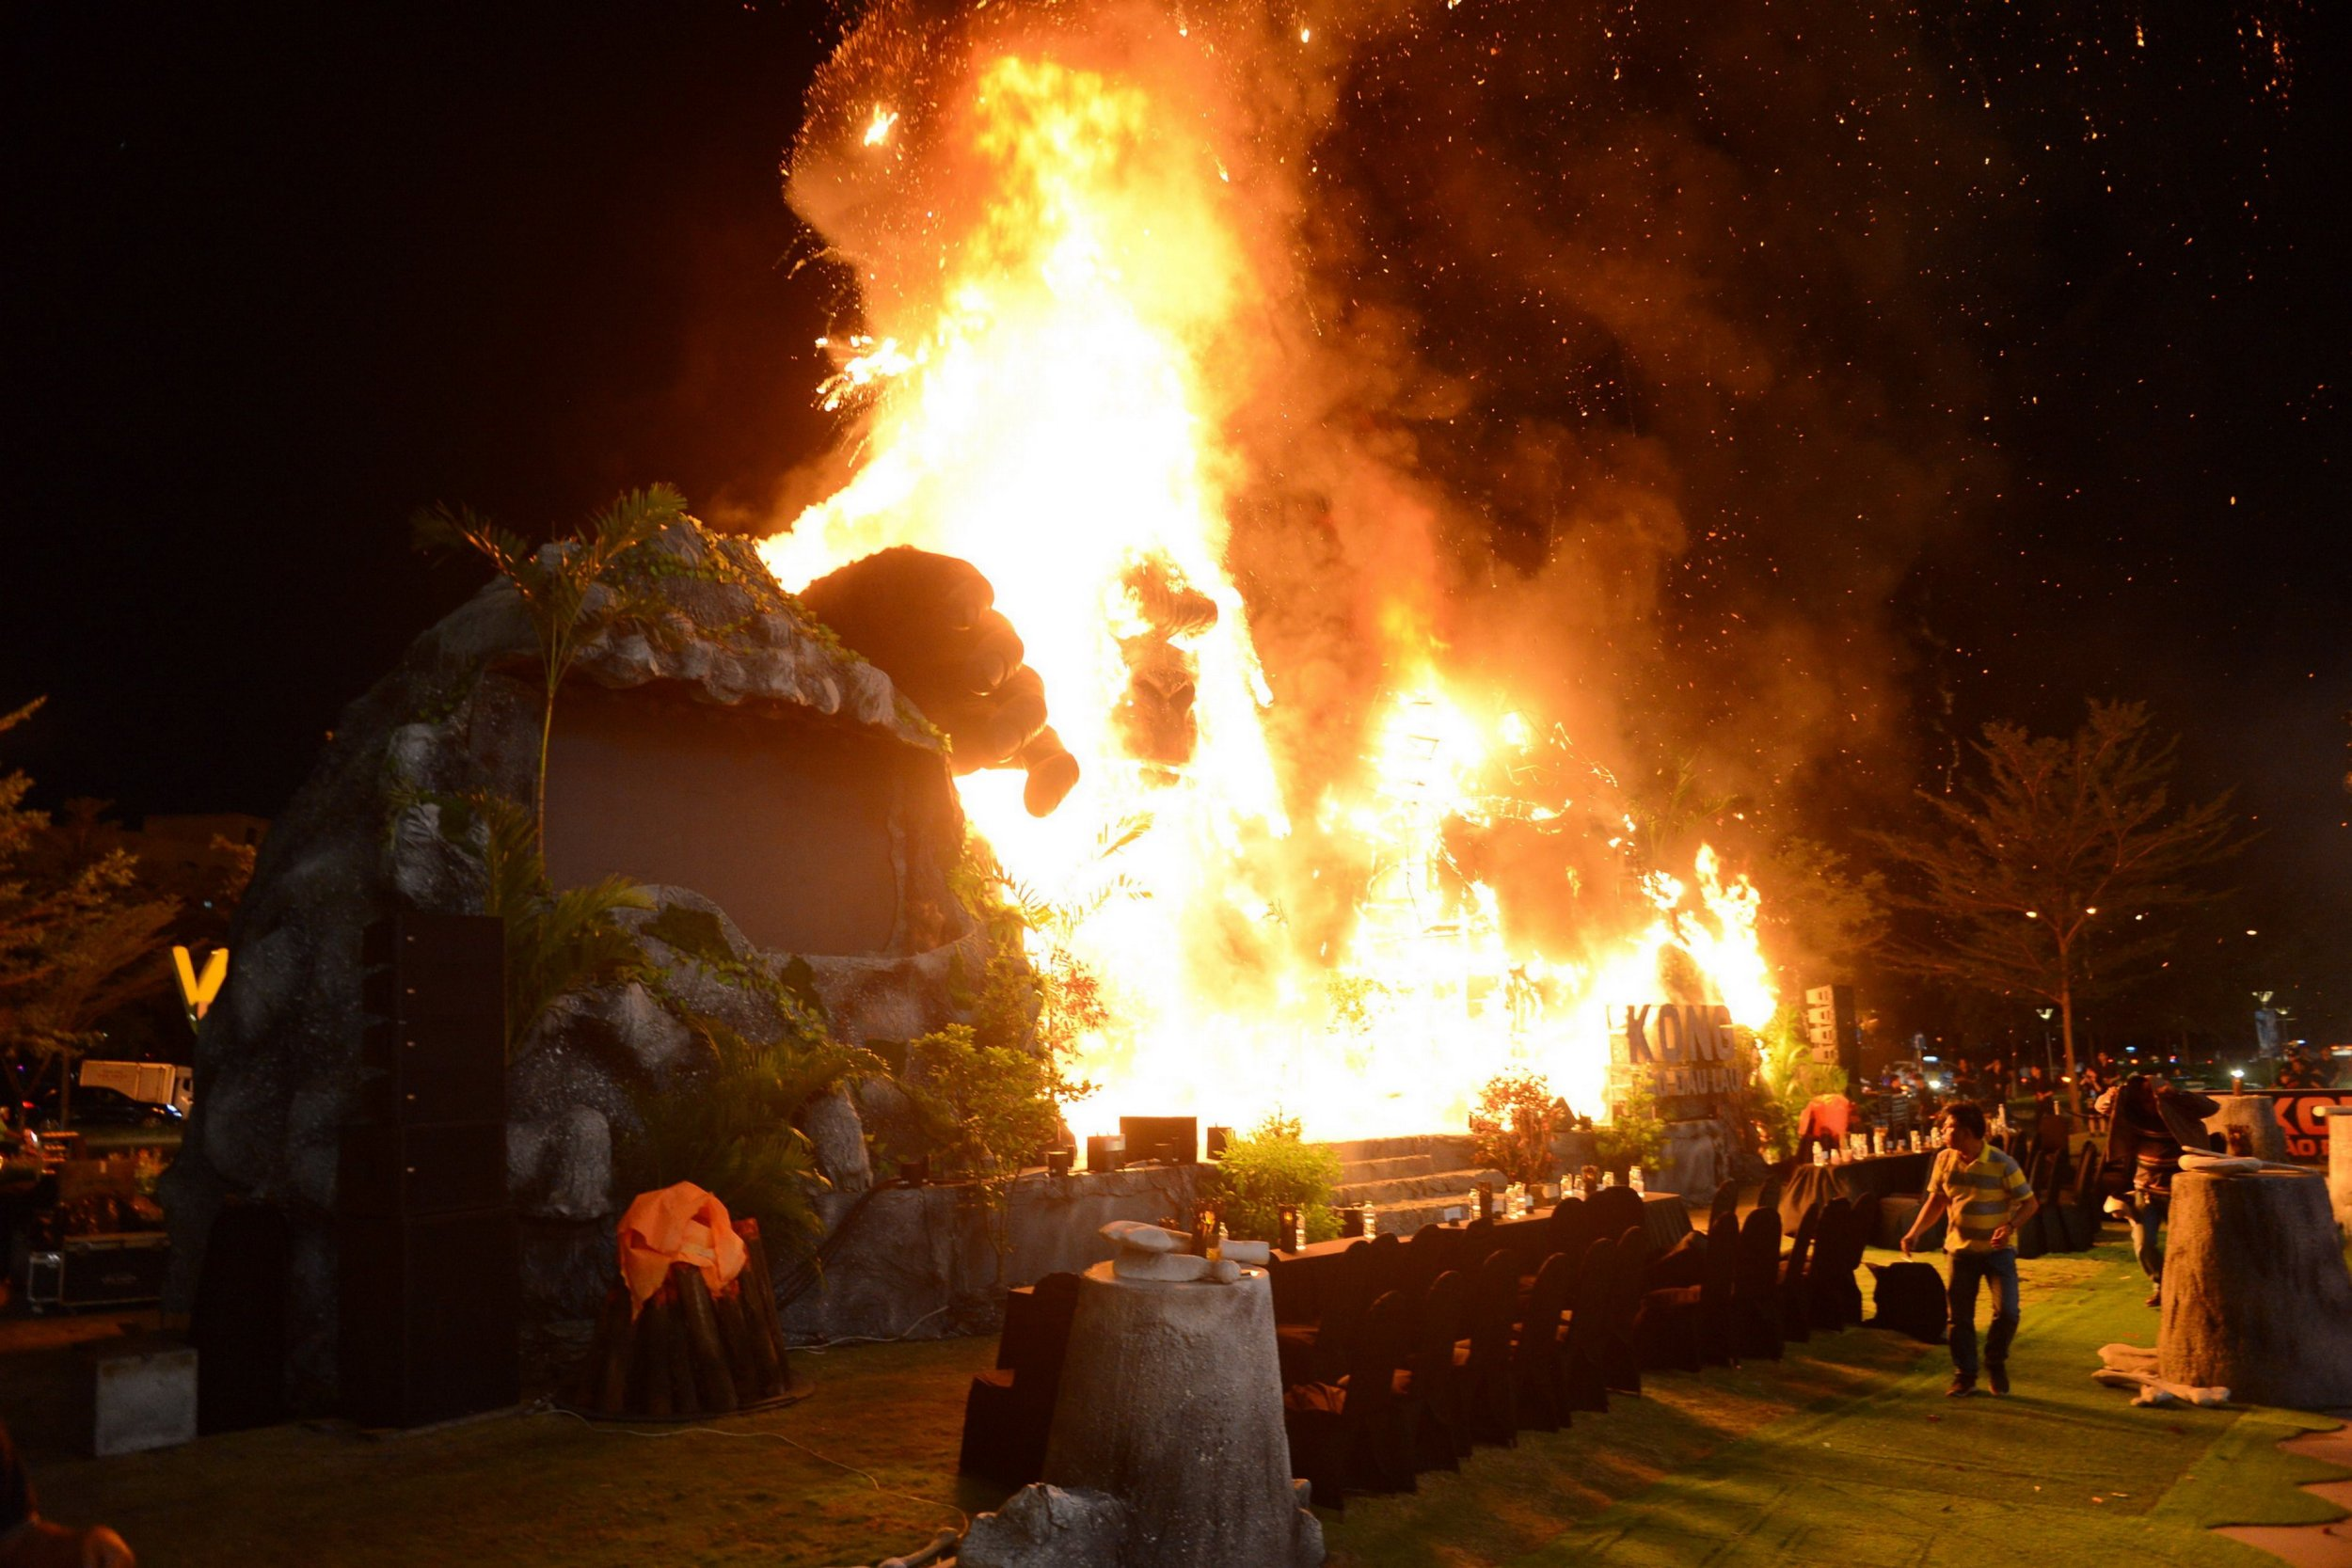 The King Kong premiere in Vietnam went up in flames, literally